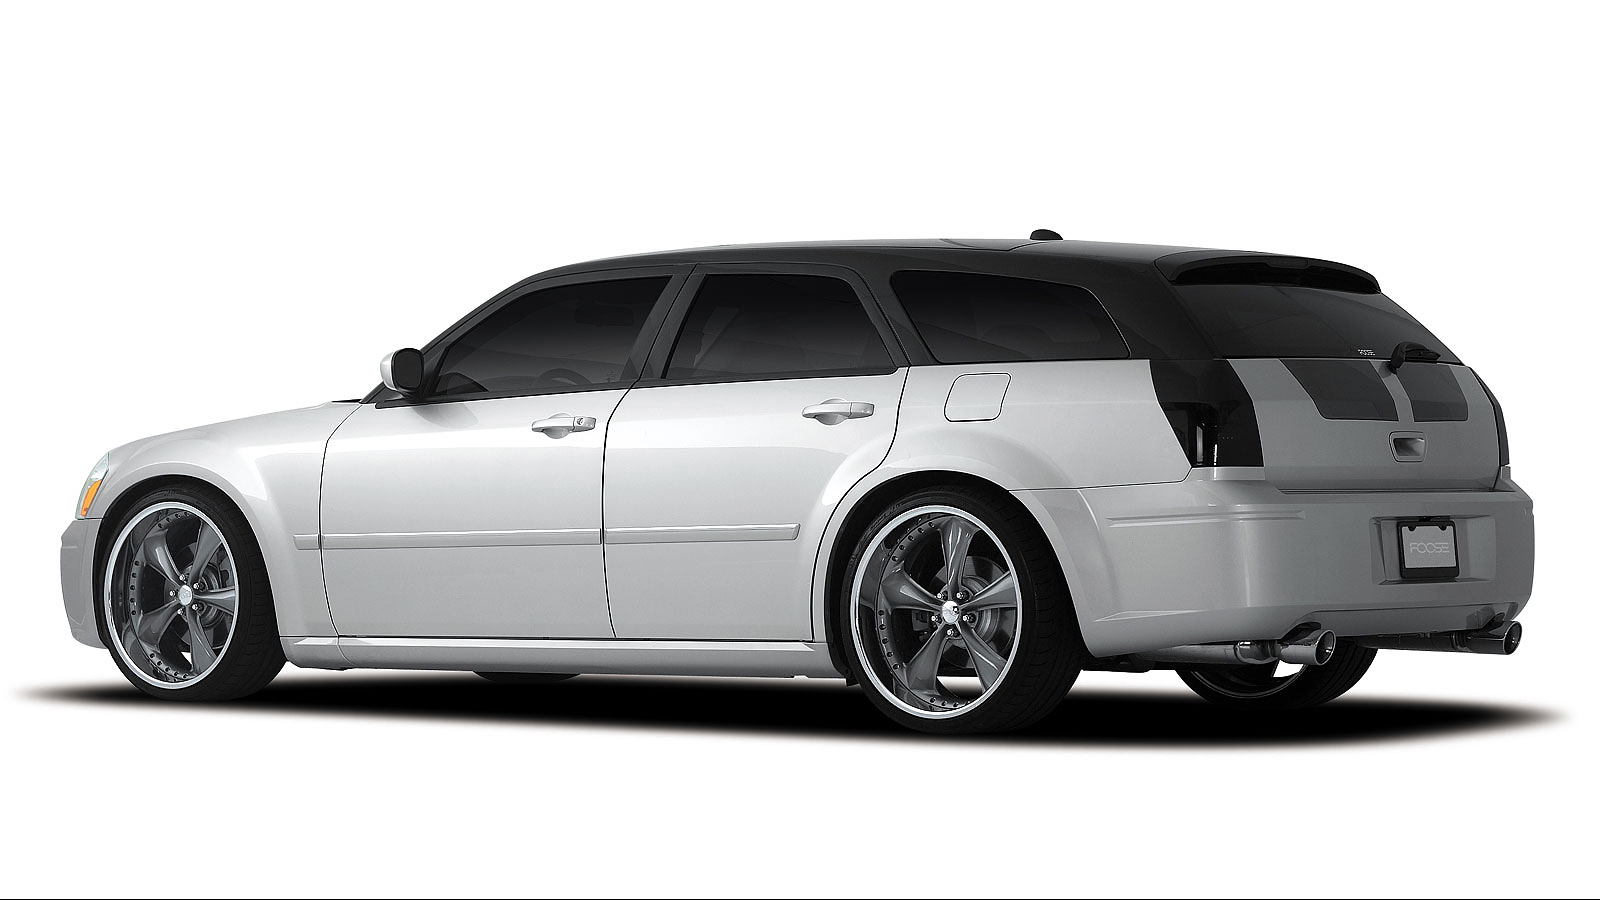 Dodge Magnum Nitrous Se F302 Gallery Mht Wheels Inc System Wiring Diagram